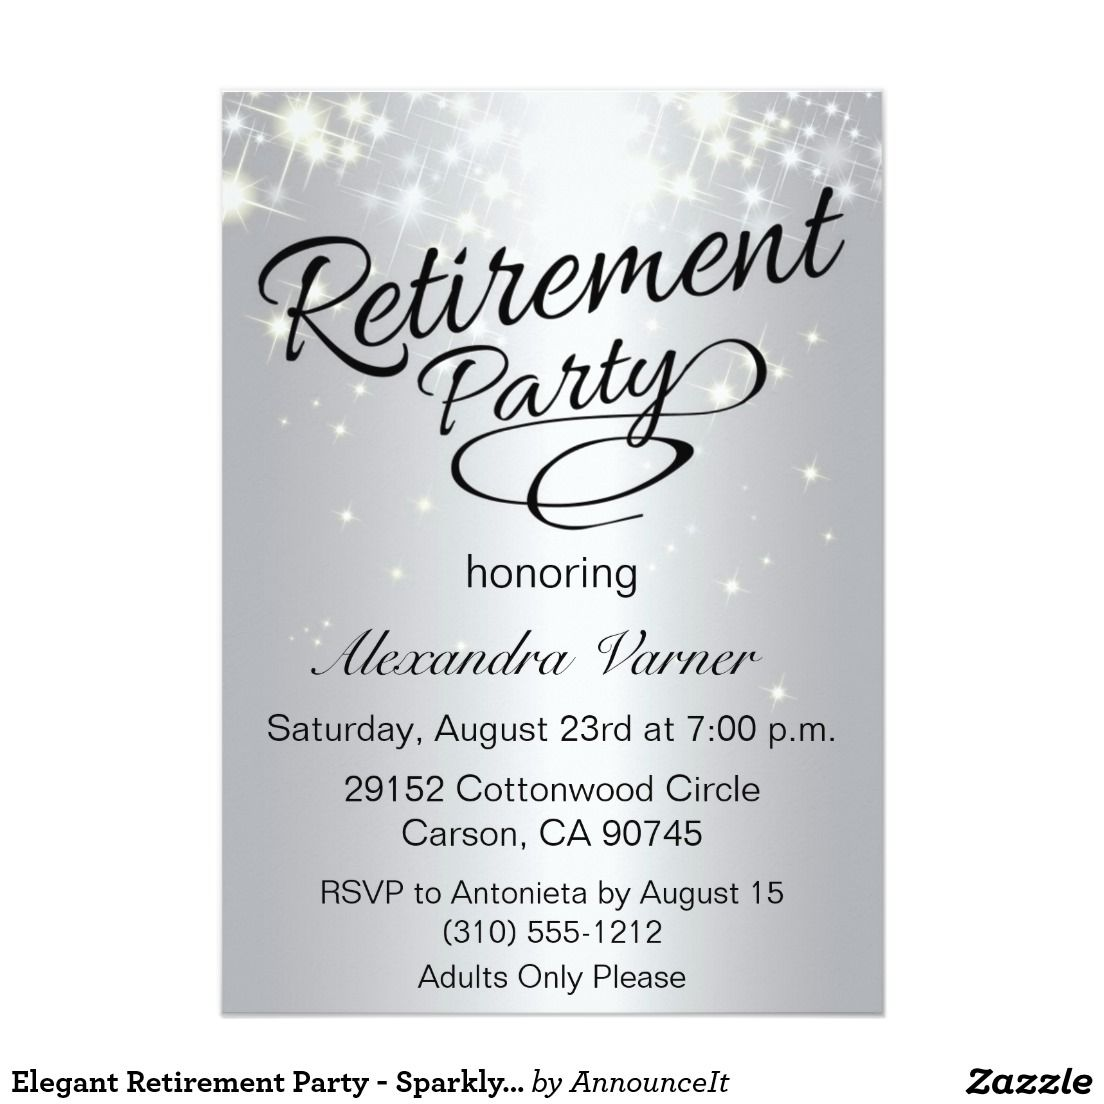 Elegant Retirement Party Invitation - Silver | Retirement parties ...